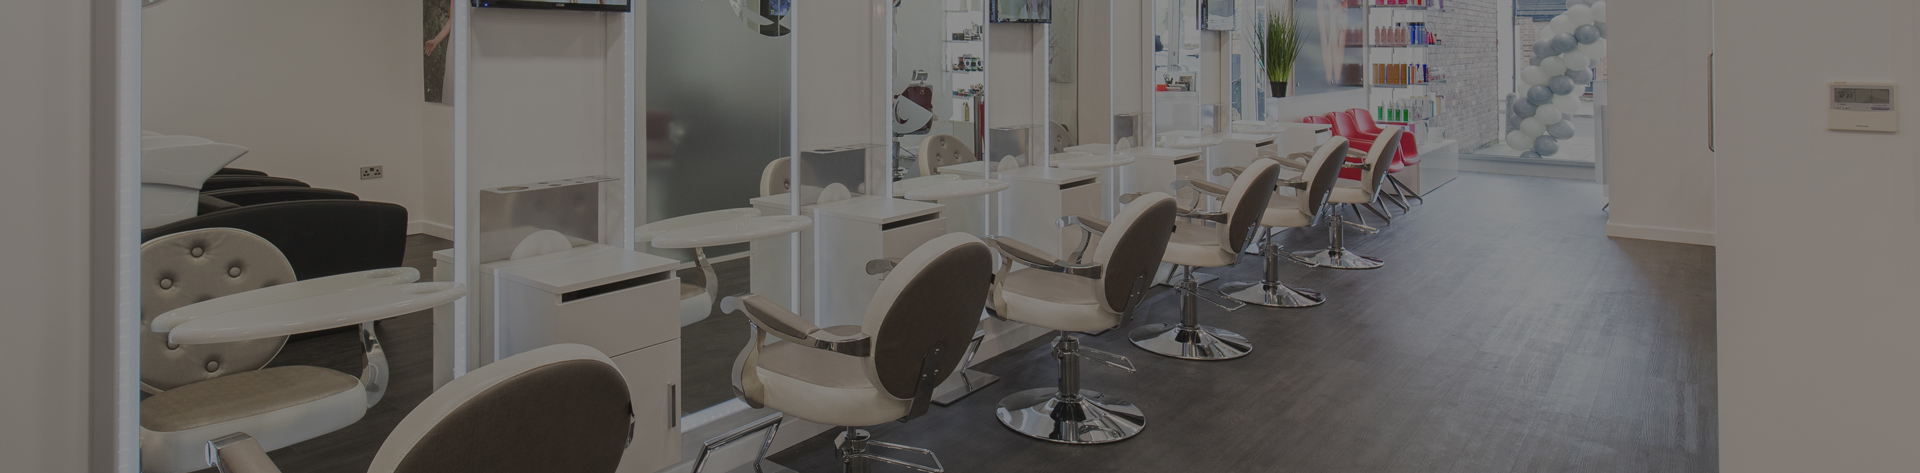 about unique hairdressing